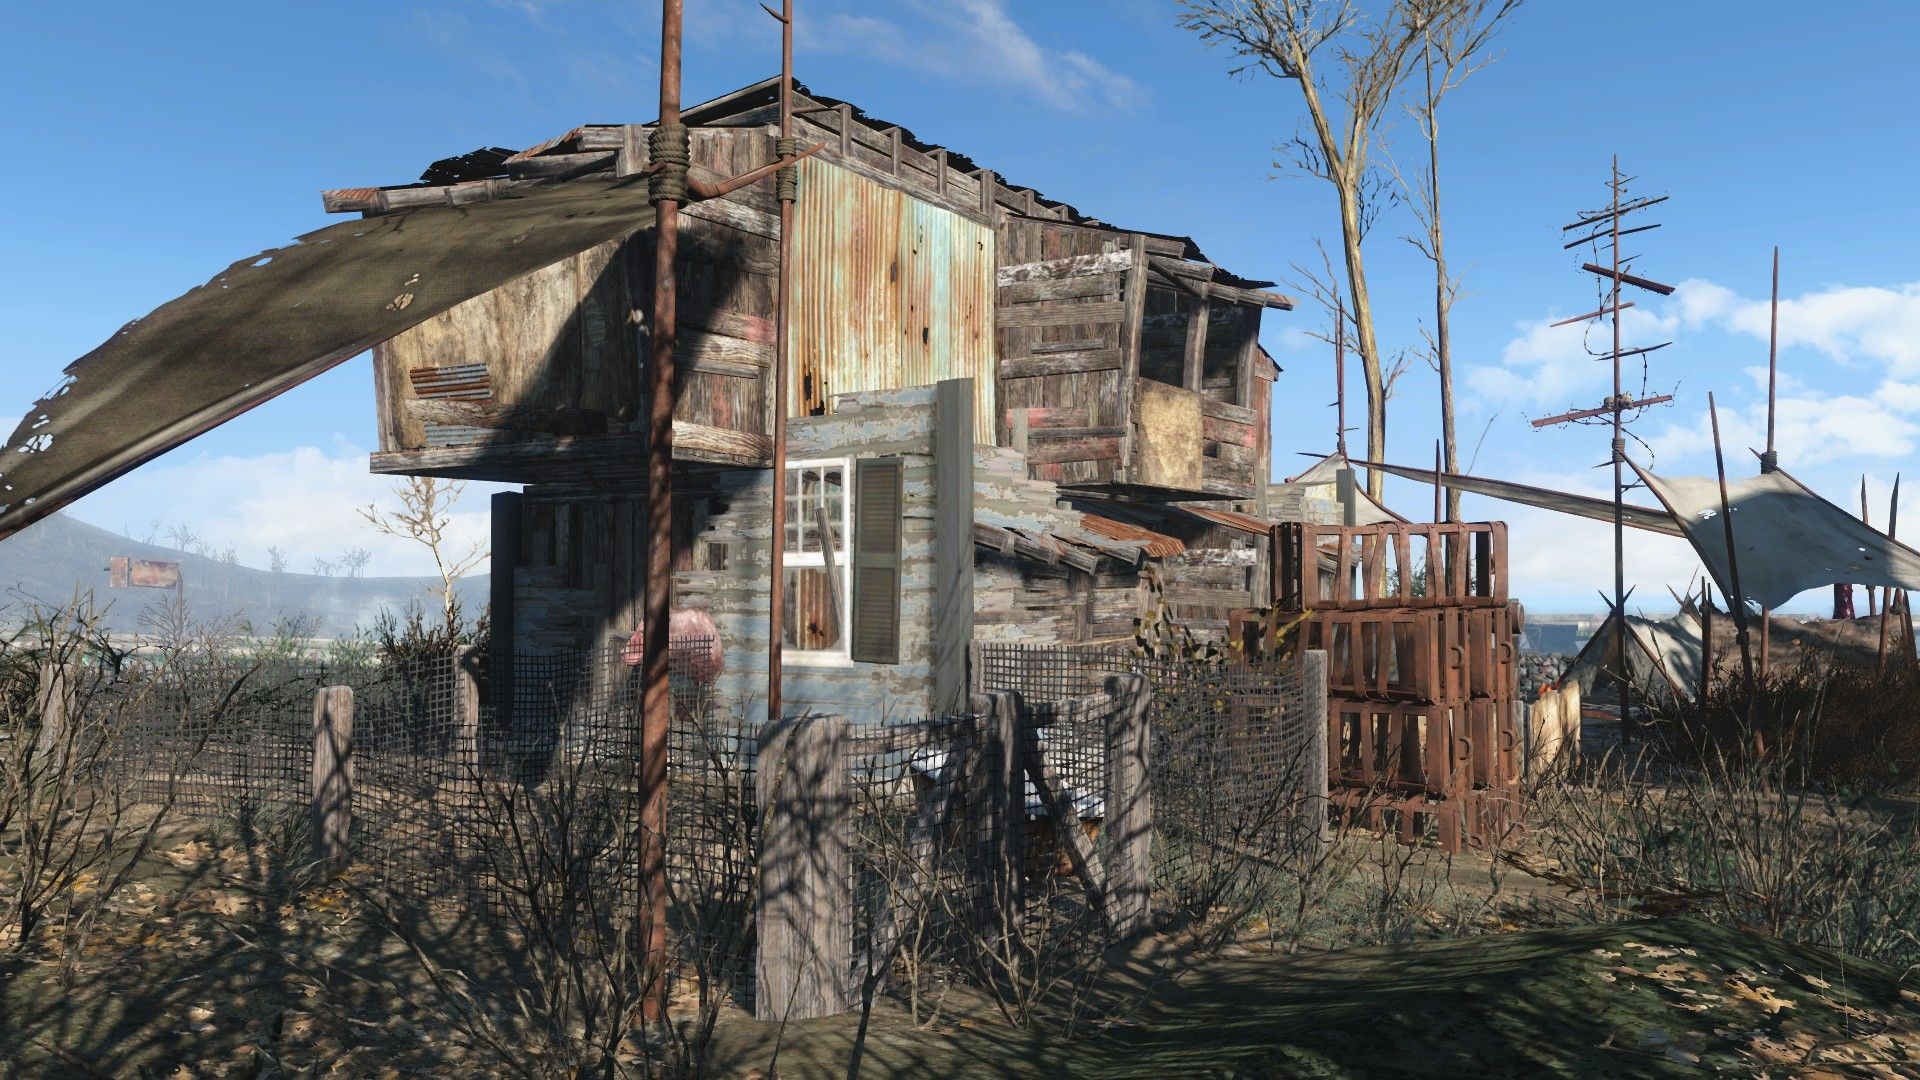 Manly Video Games Fallout 4 Diamond City House Ideas Fallout 4 Sanctuary House Ideas Fallout Settlement Building Video Suncast Shed Pin By Colten Kensett On Pinterest Fallout